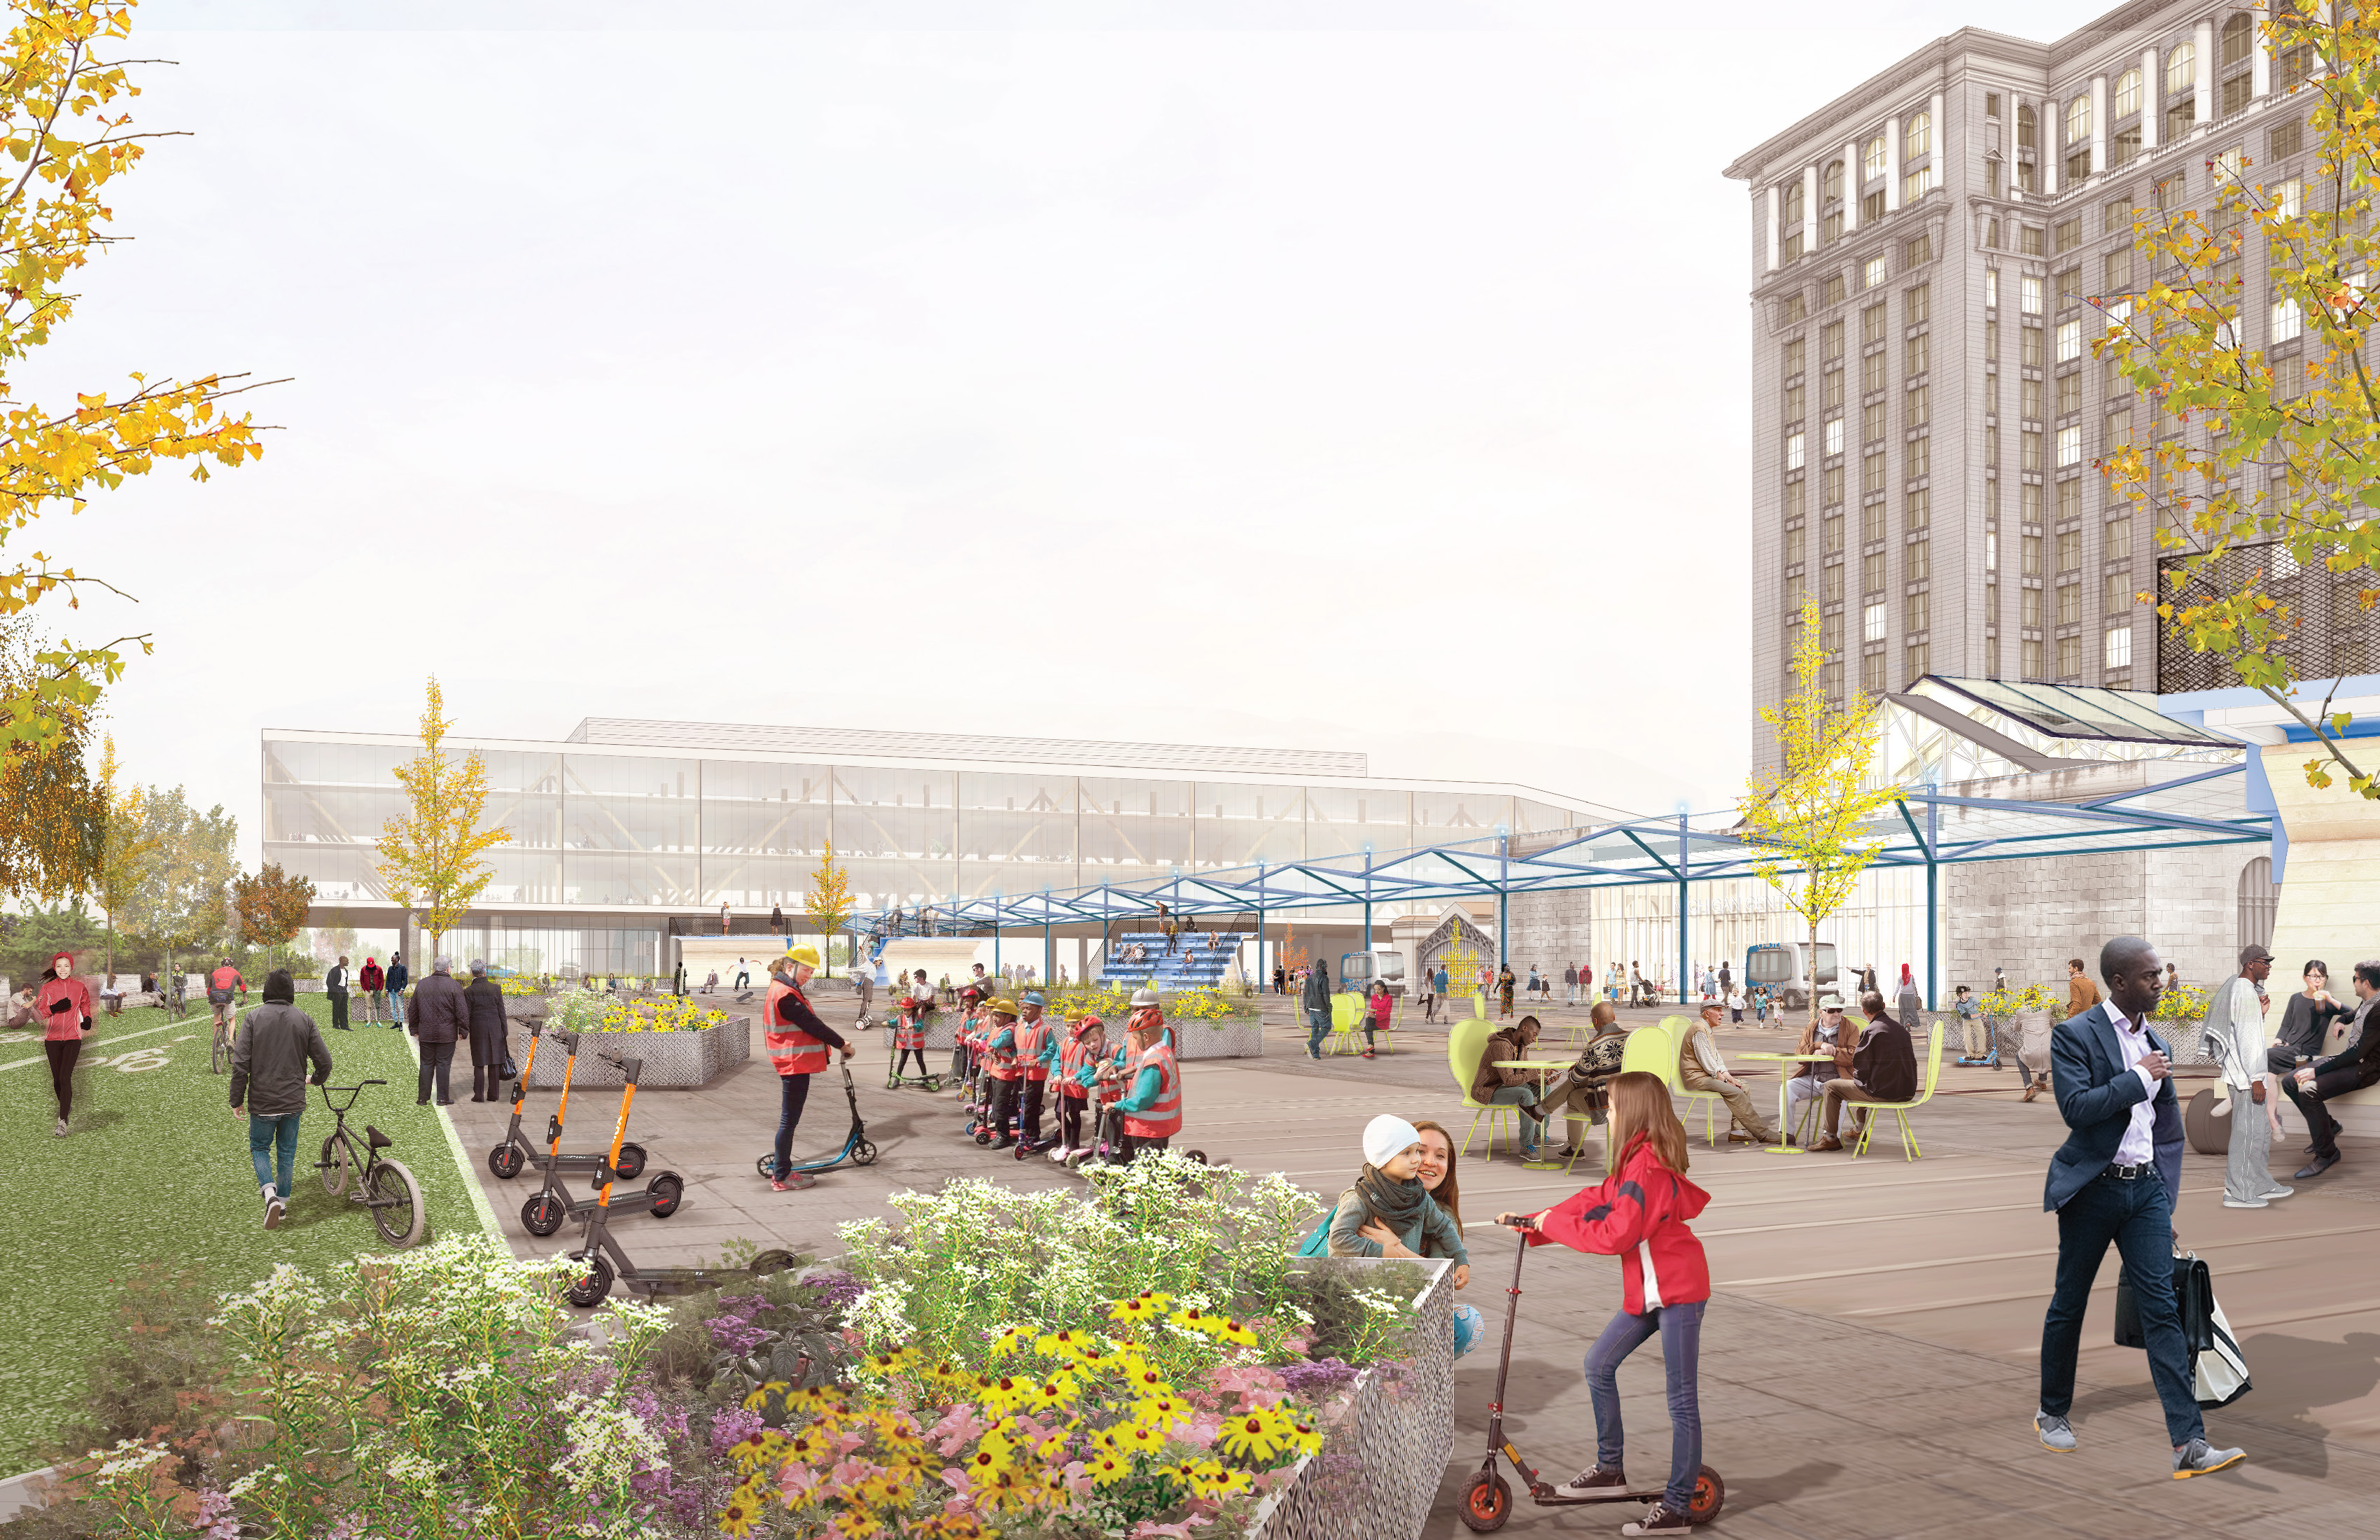 At Michigan Central Station, Abandoned roadways and railyards will give way to public spaces